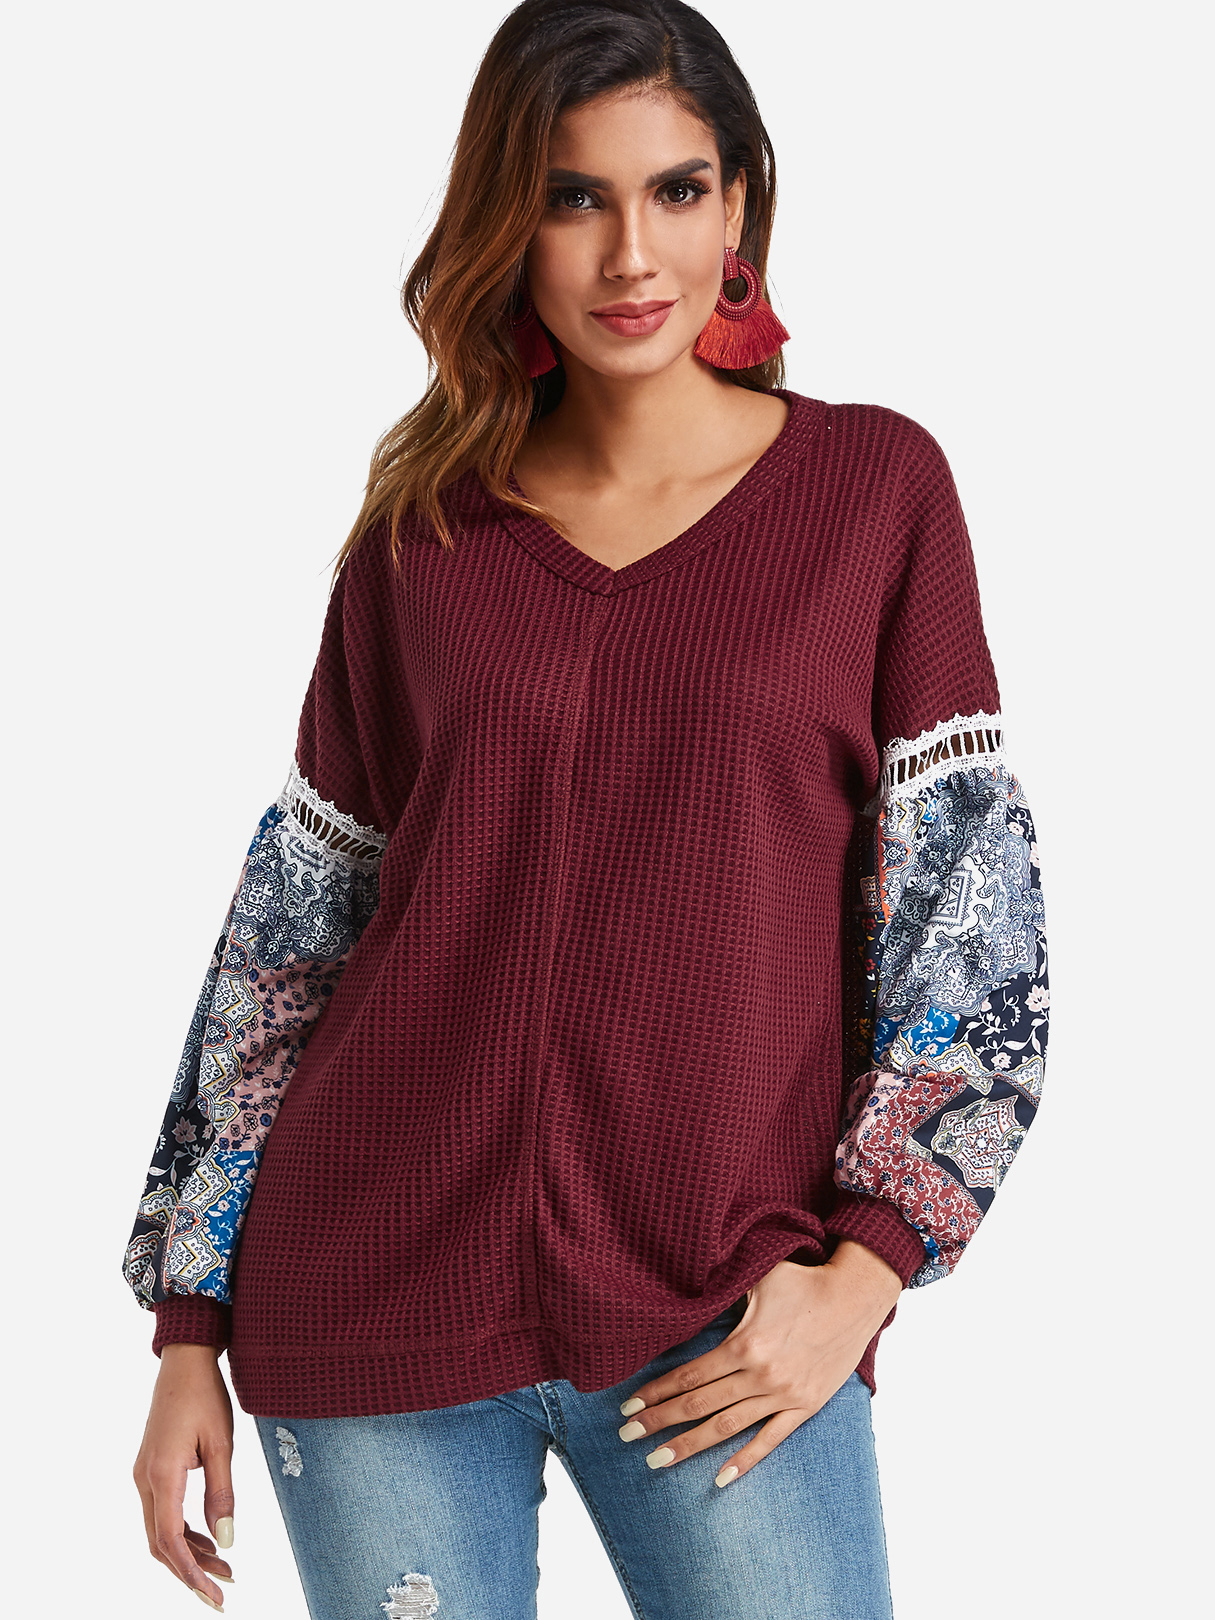 Burgundy V-neck Random Floral Print Puff Sleeve Top